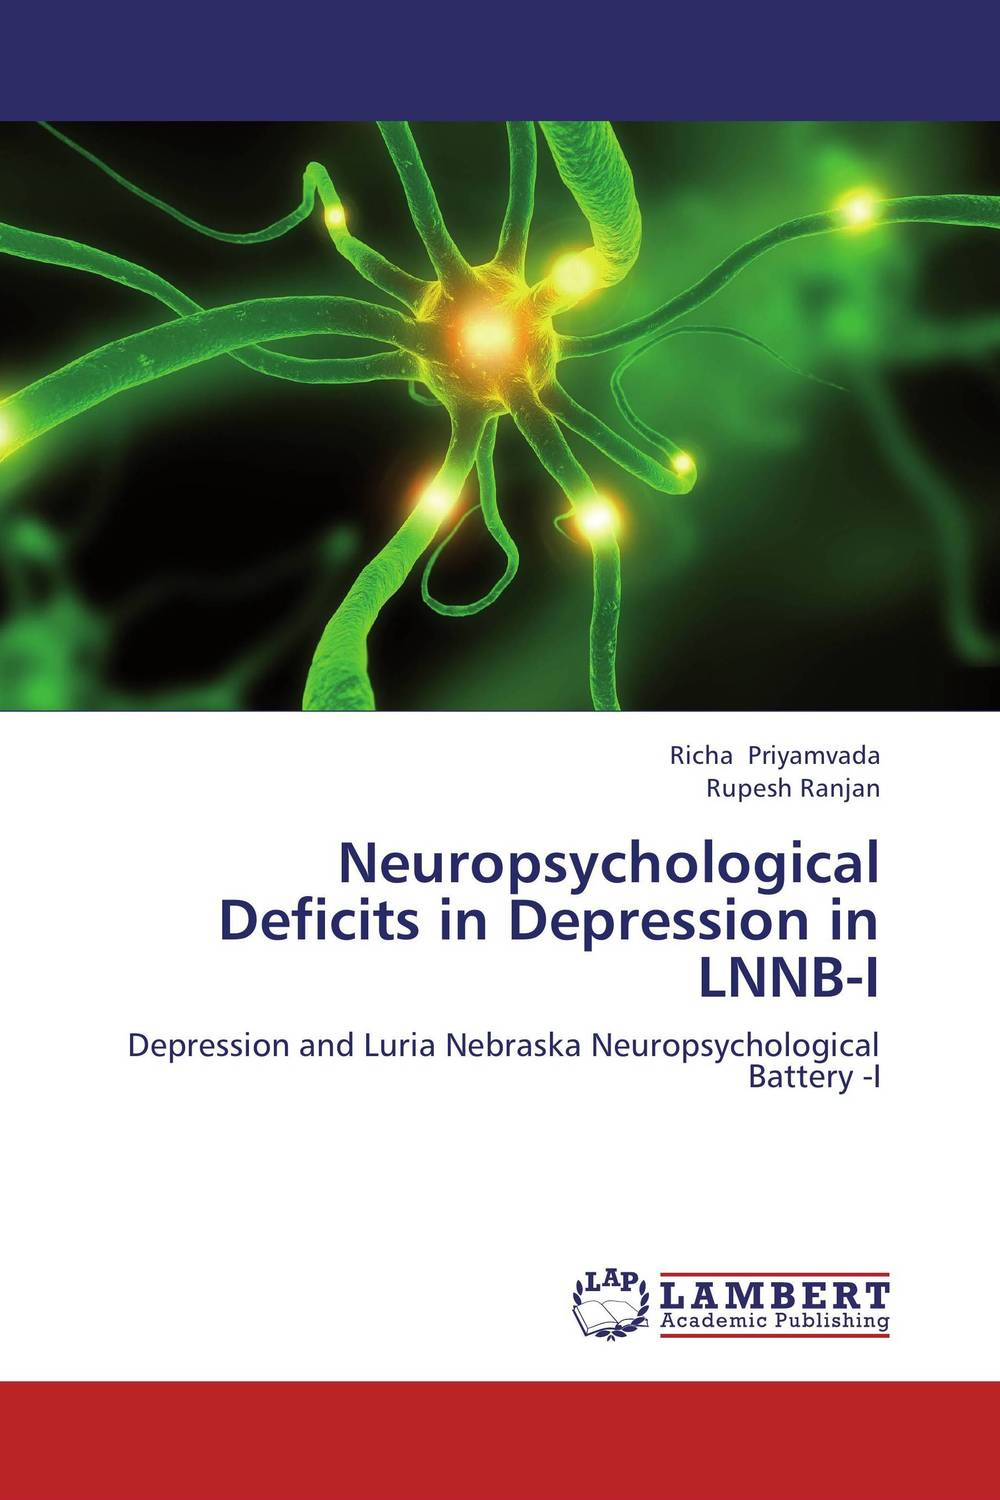 Neuropsychological Deficits in Depression in LNNB-I neuropsychological functions in depression with anxiety disorders